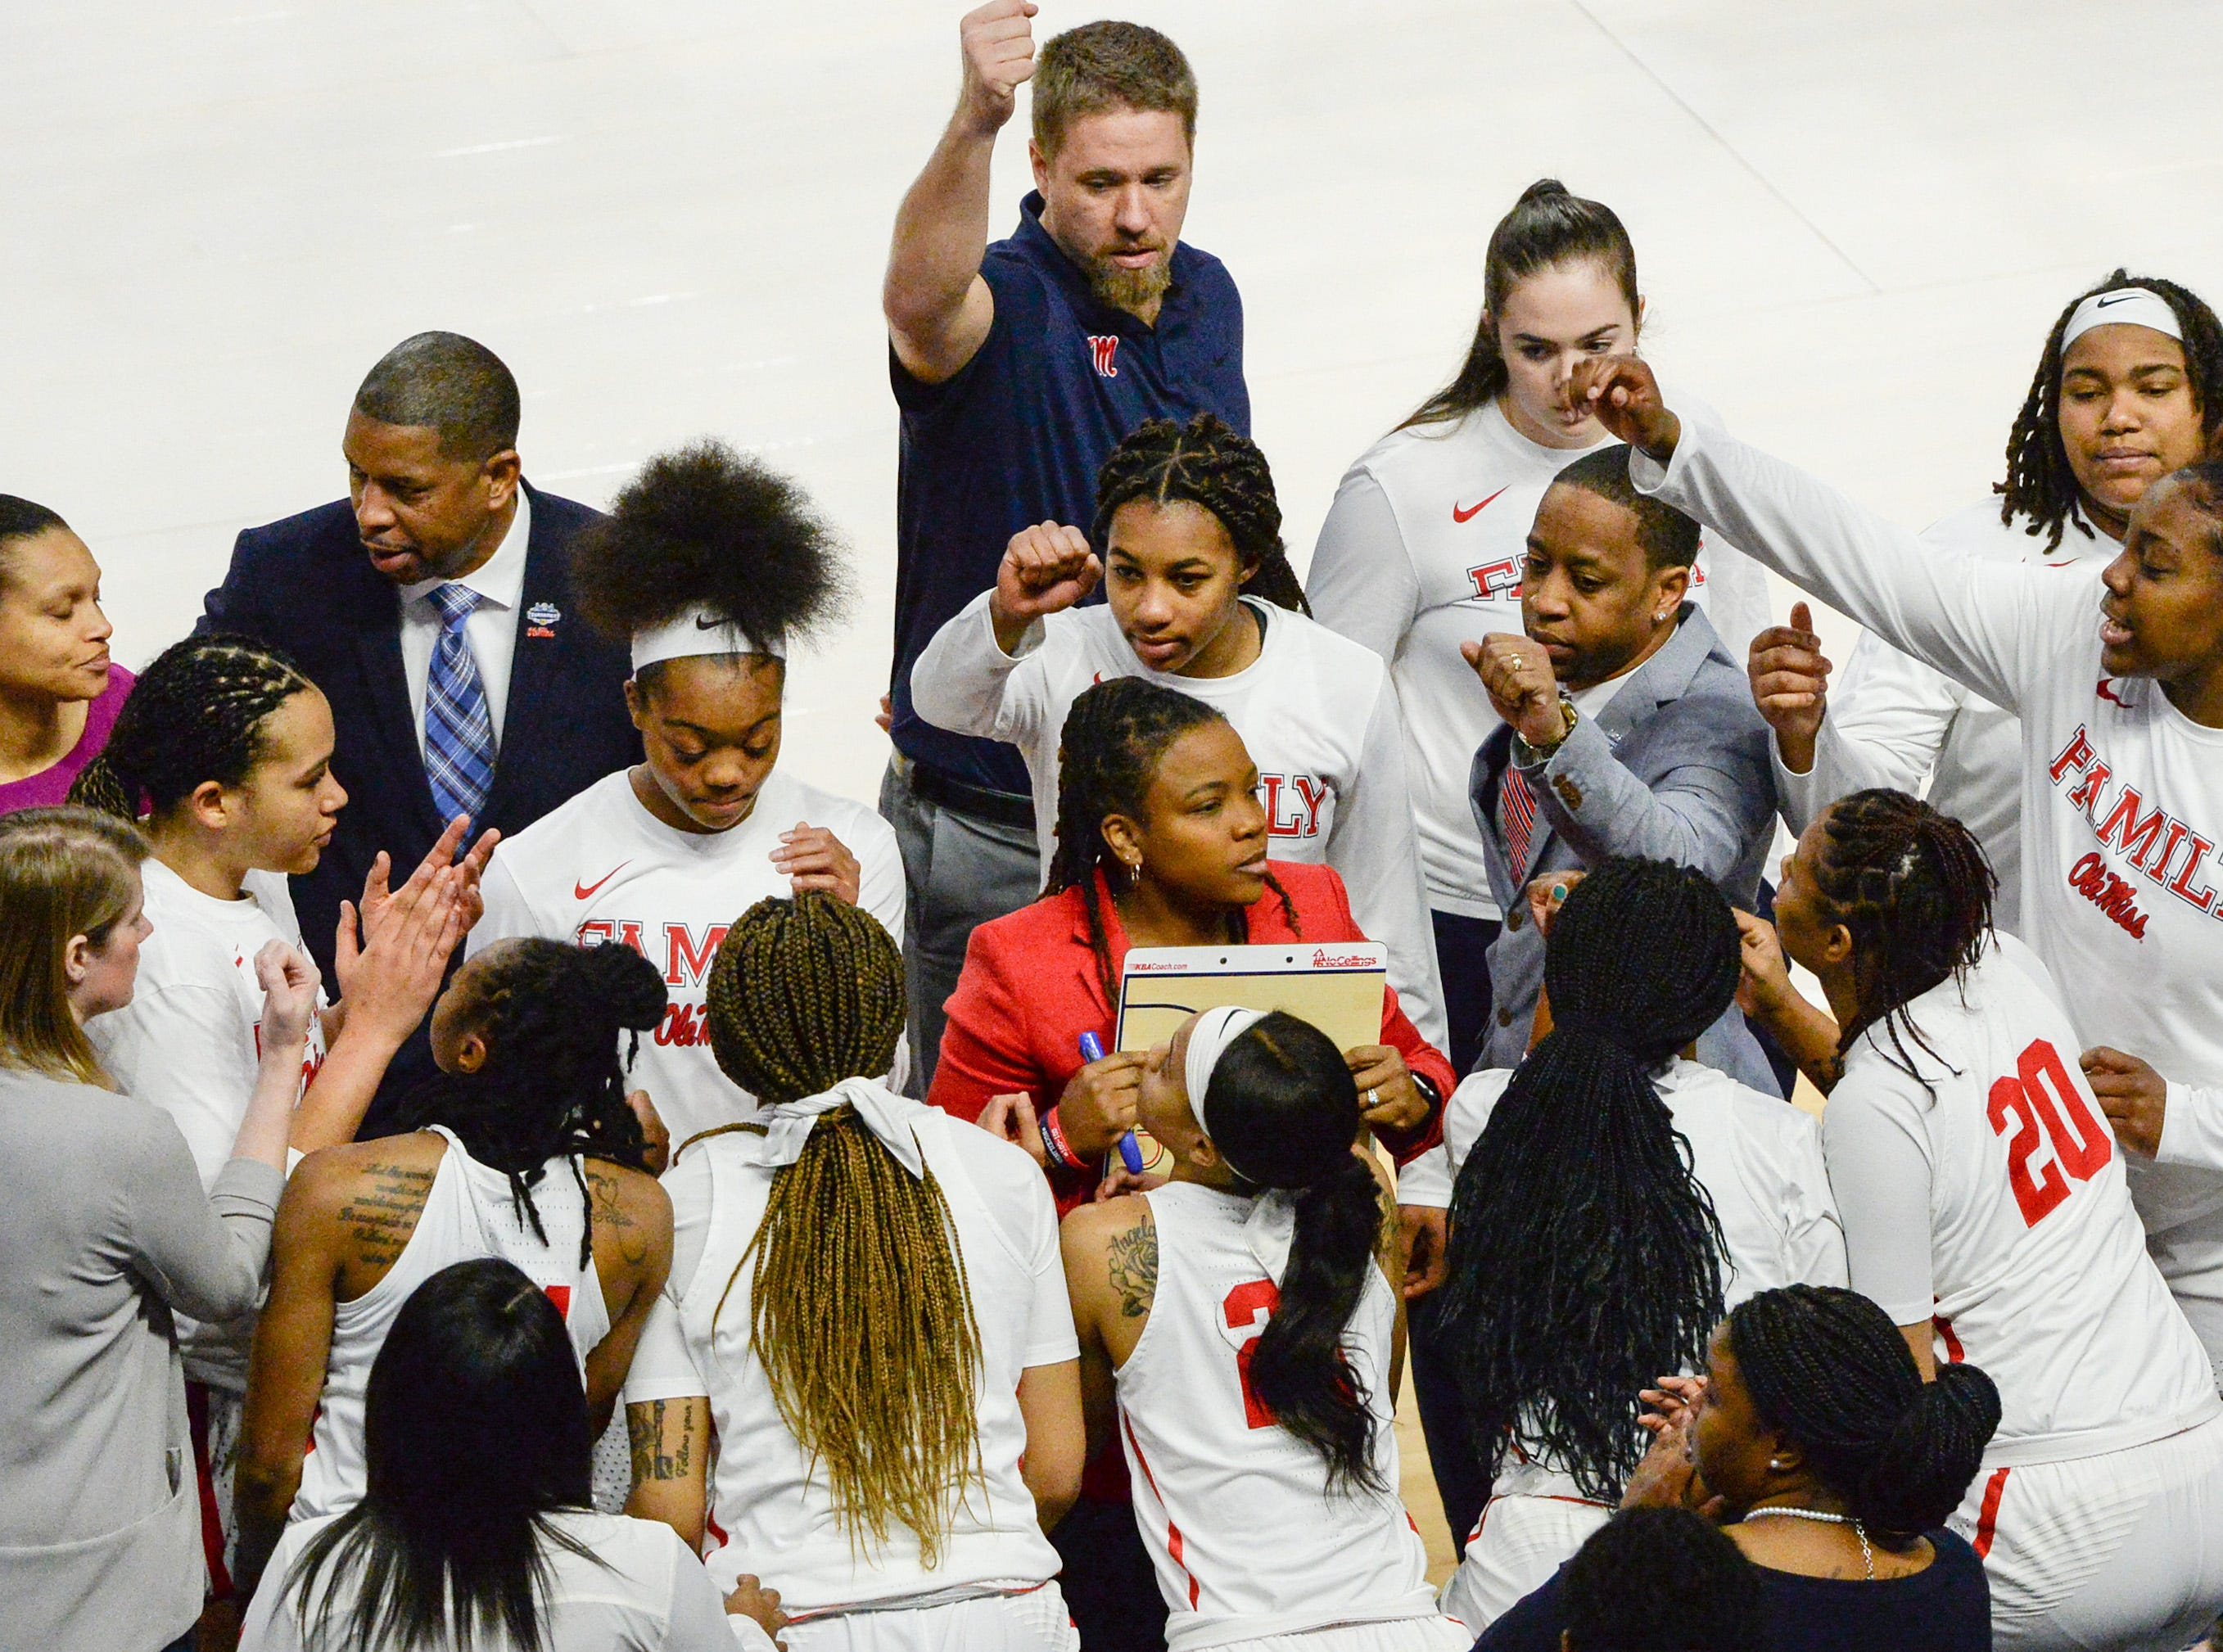 Head Coach Yolett McPhee-McCuin talks with players before the Southeastern Conference Women's Tournament game at Bon Secour Wellness Arena in Greenville Wednesday, March 6, 2019.